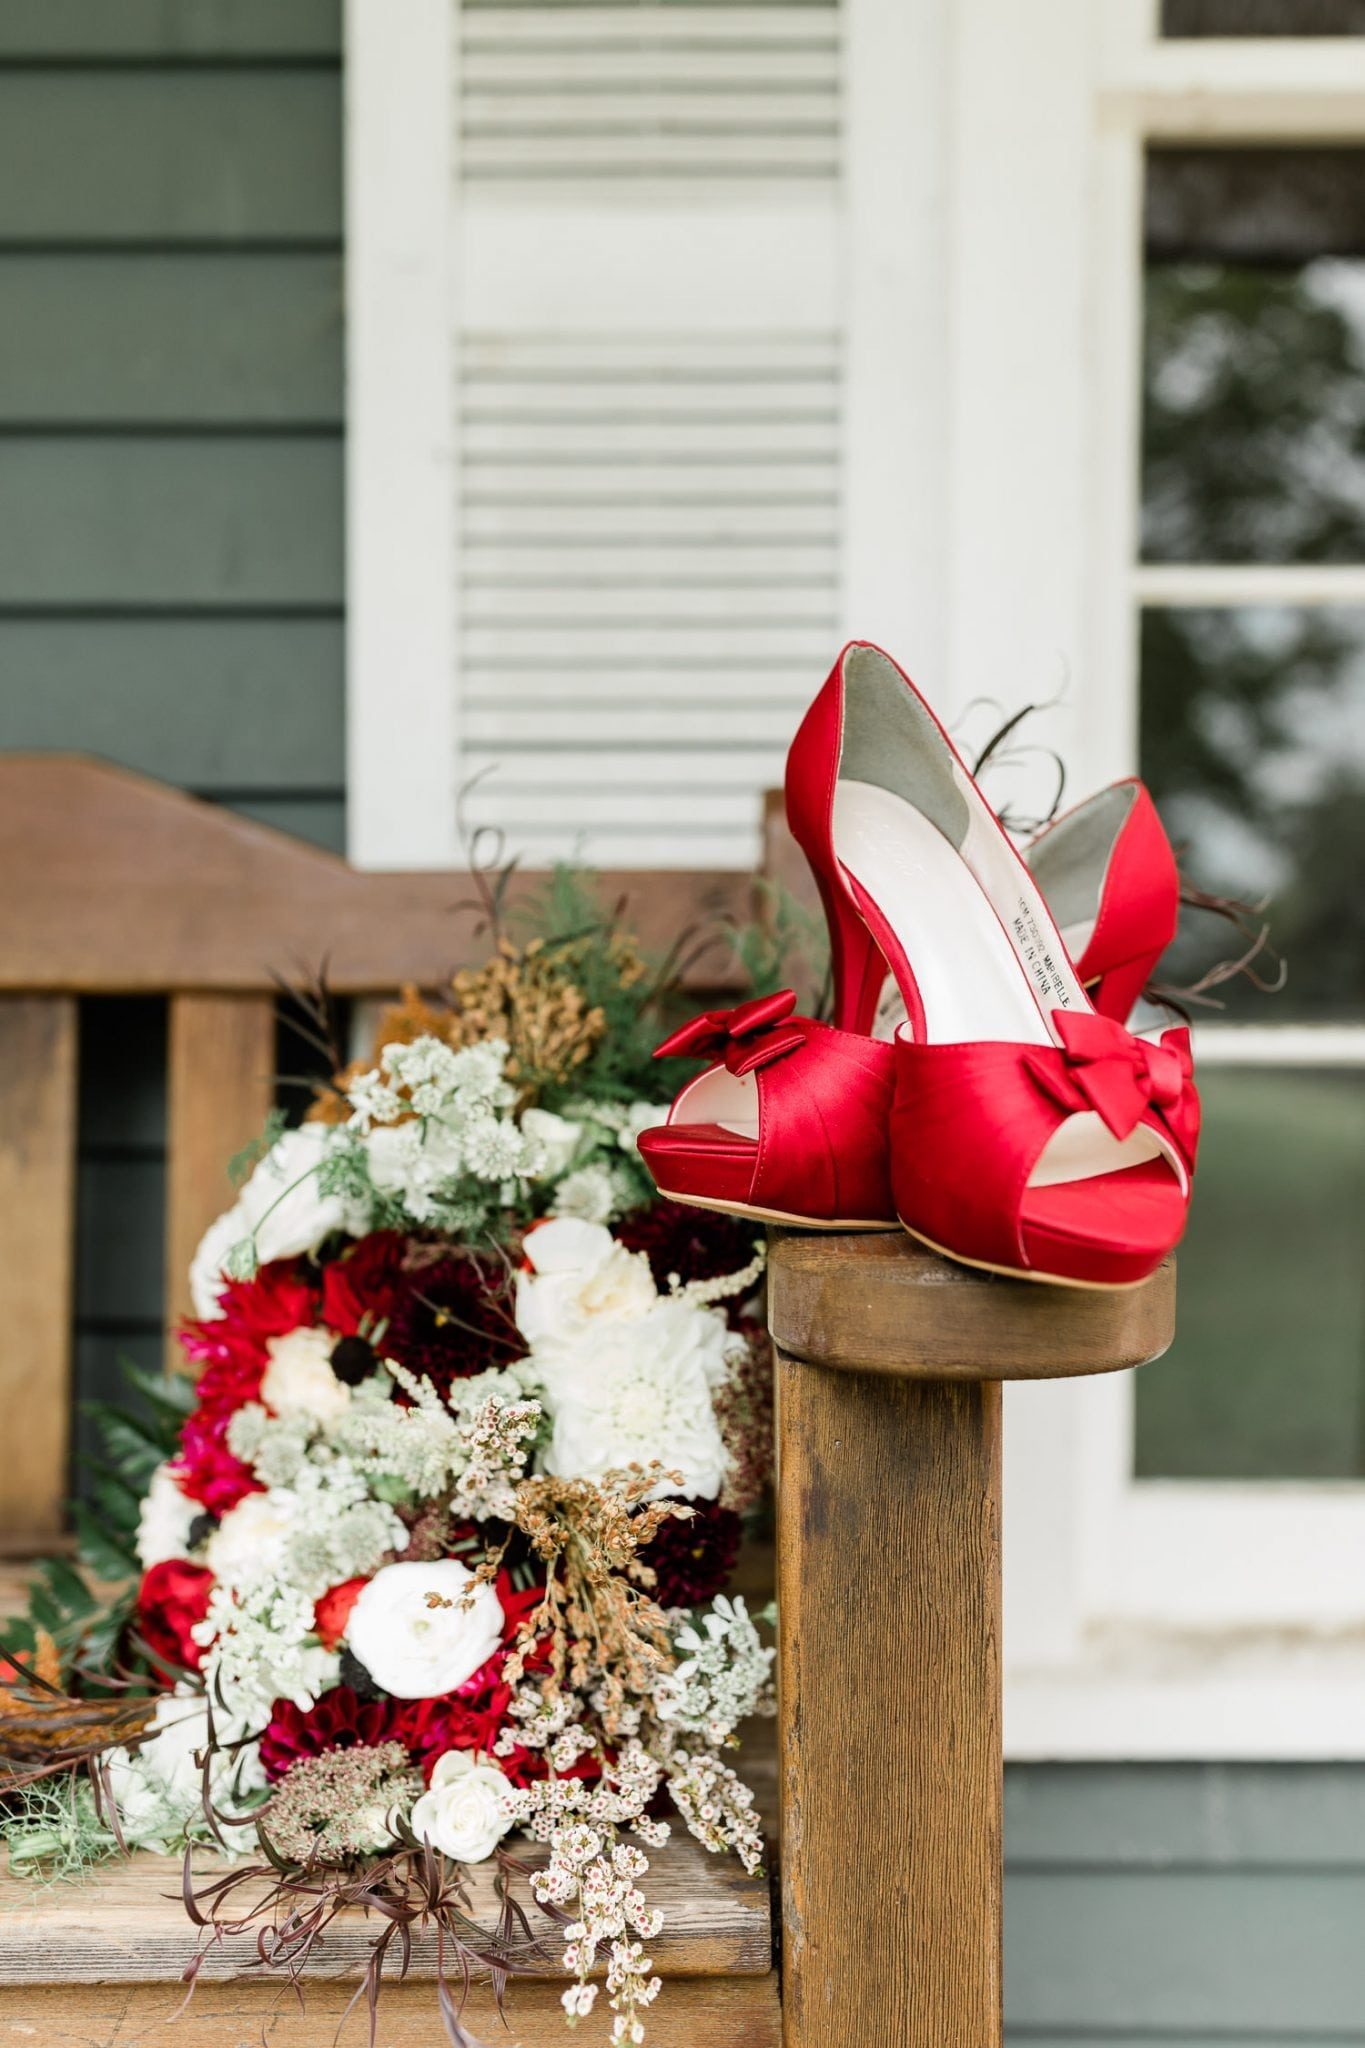 Wedding shoes and bouquet rustic style | Vancouver wedding photographer